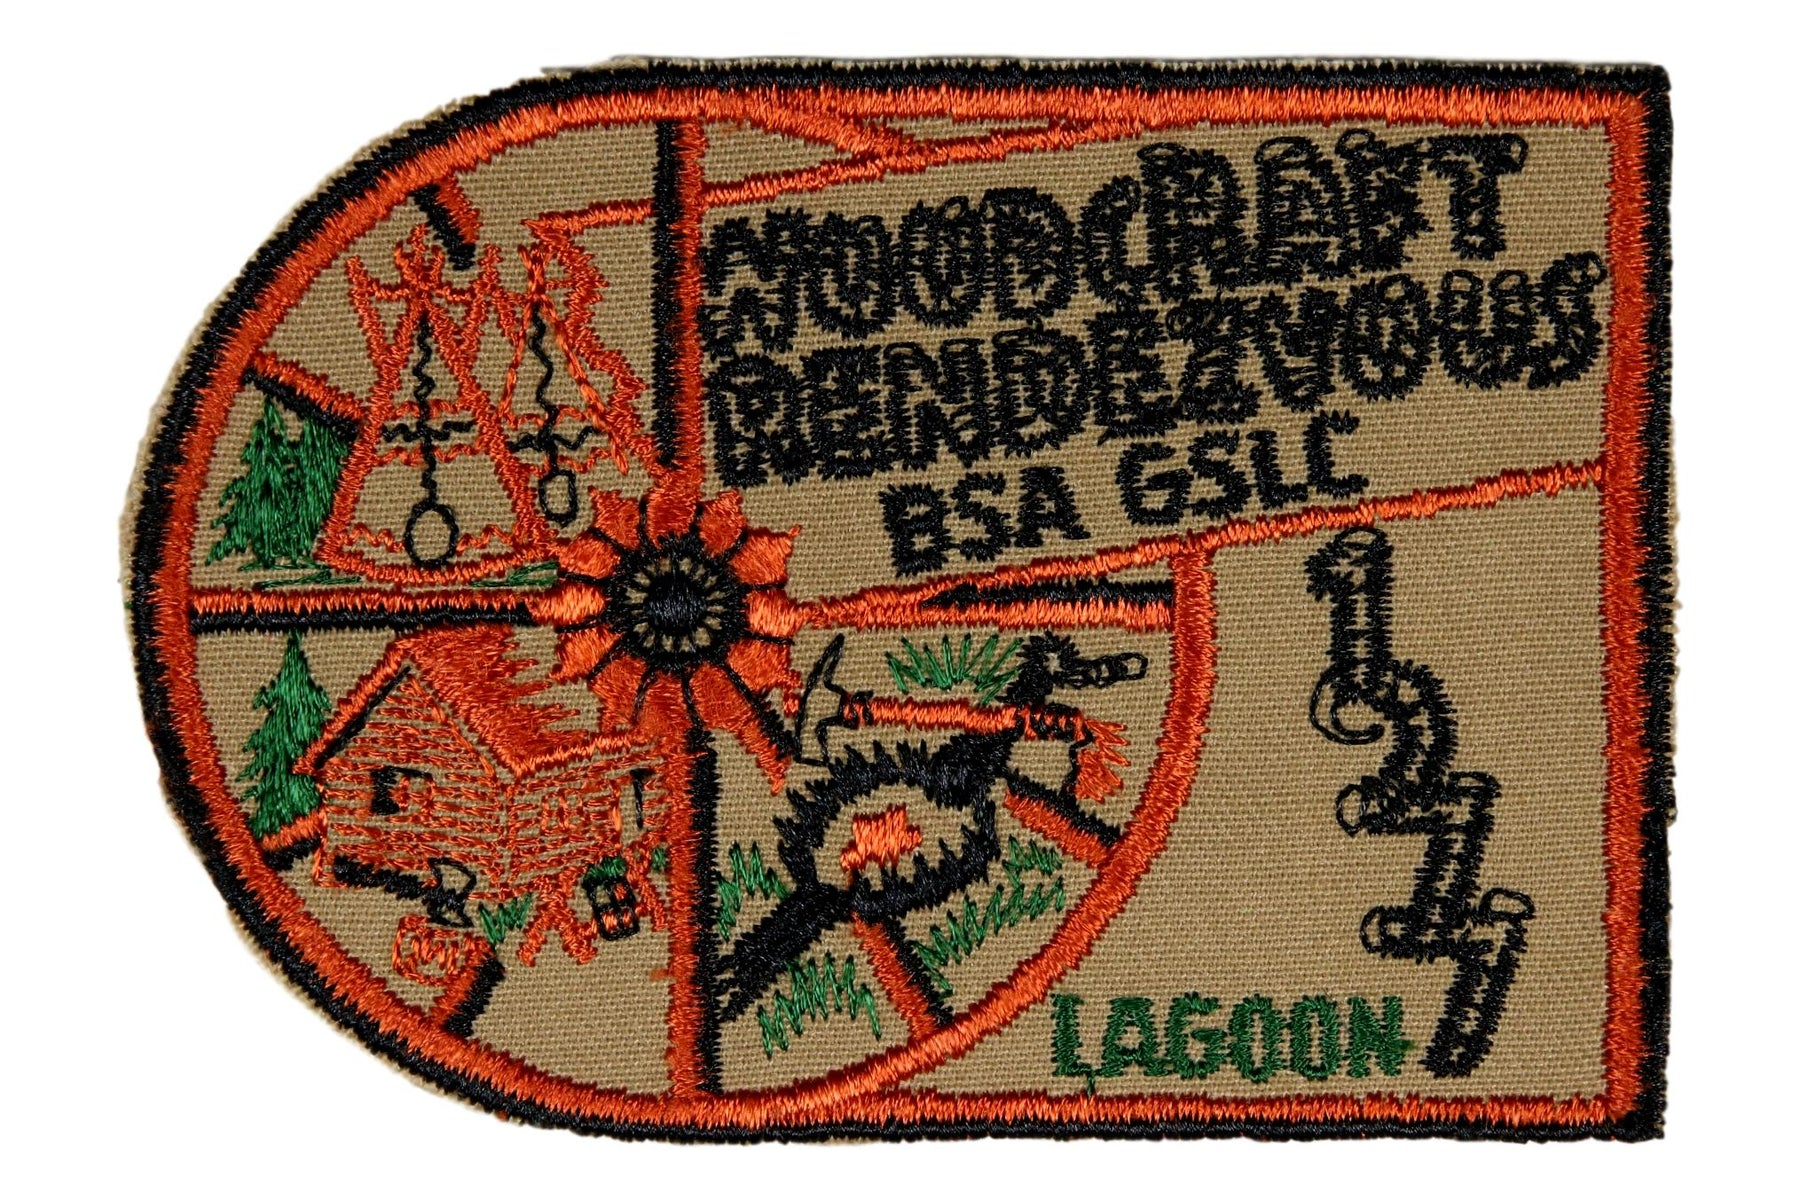 1977 Great Salt Lake Scout O Rama Patch Woodcraft Rendezvous